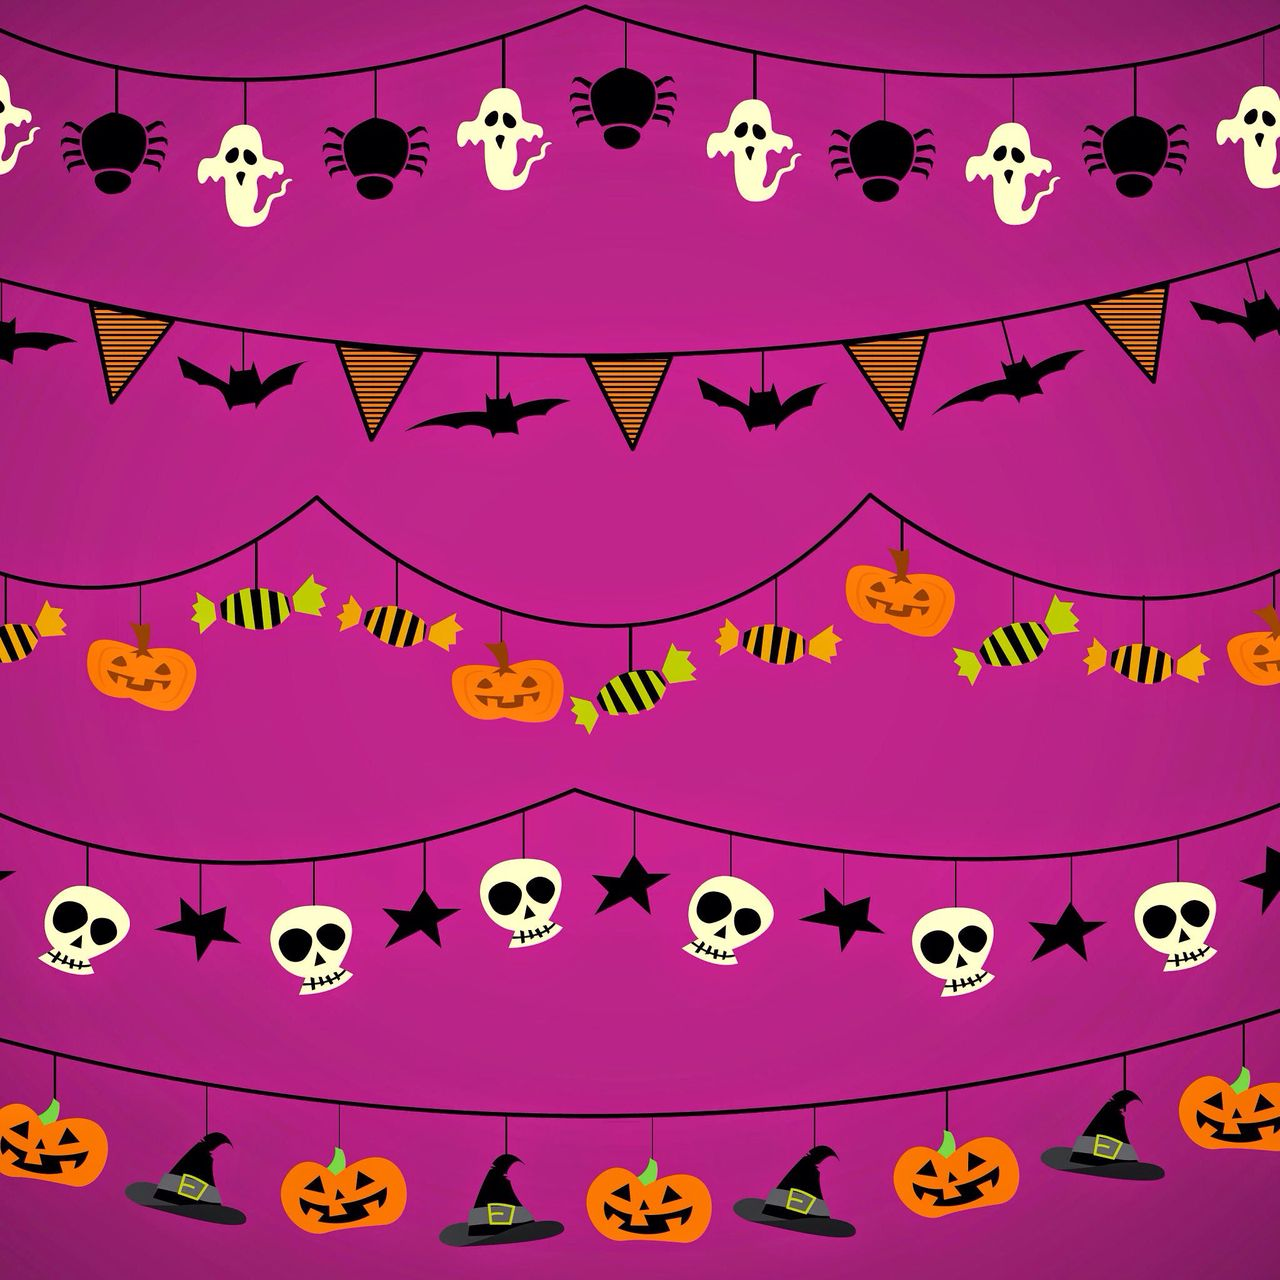 1280x1280 Wallpapers halloween | Fondos de Pantalla